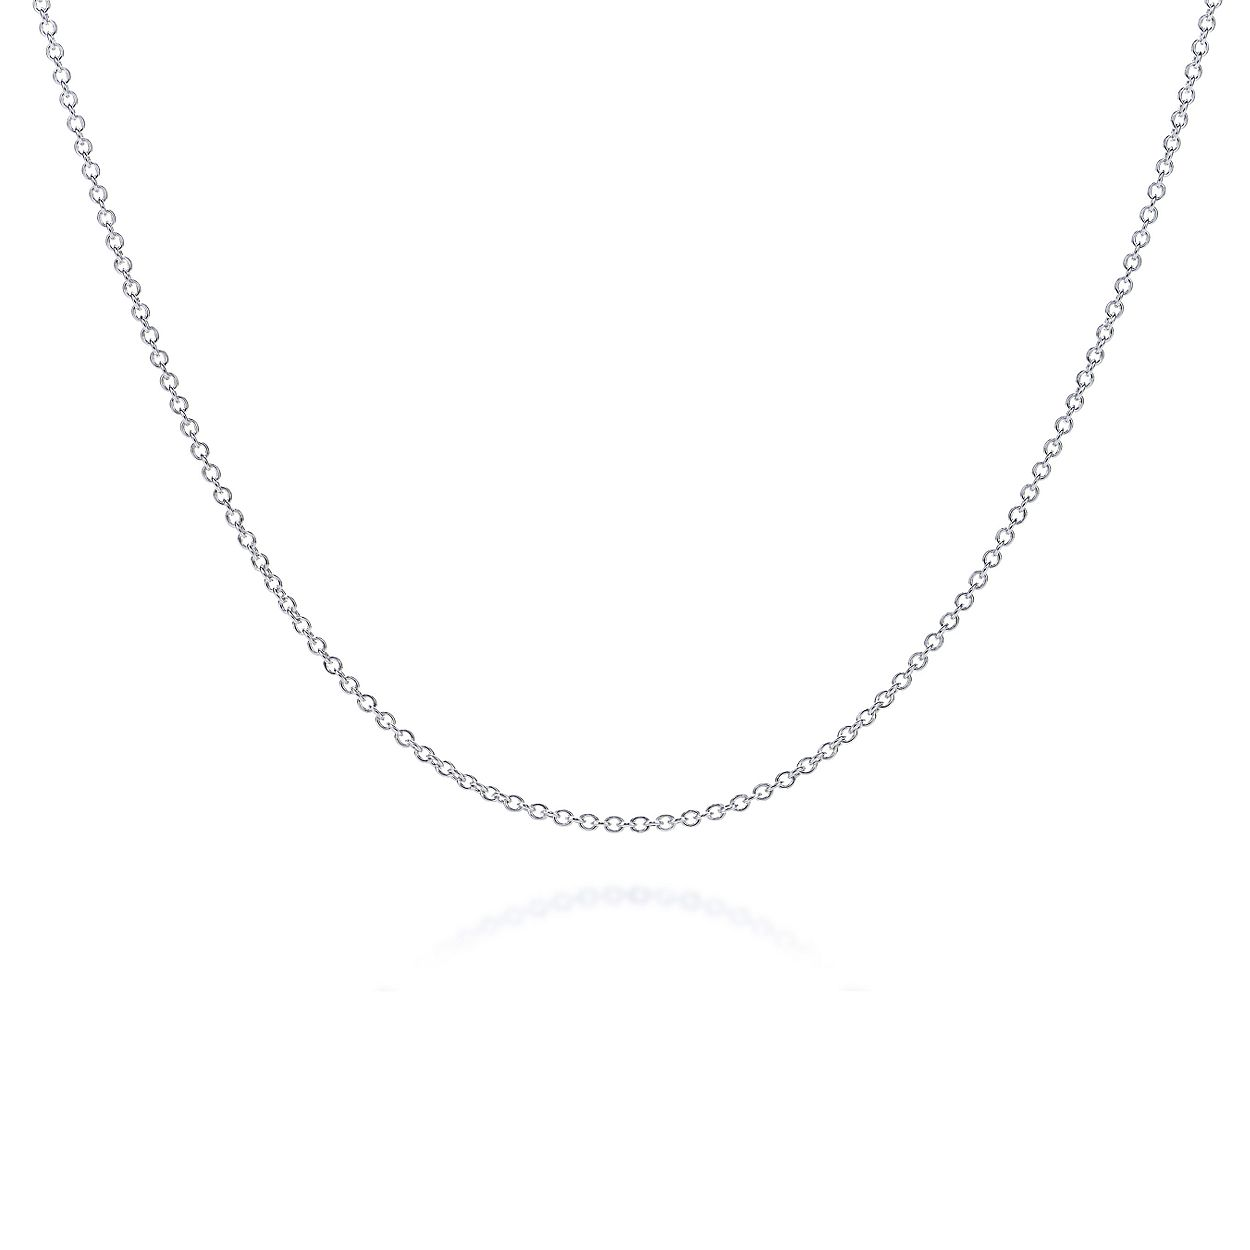 663be4f20 Shop Sterling Silver Chain Necklace | Tiffany & Co.